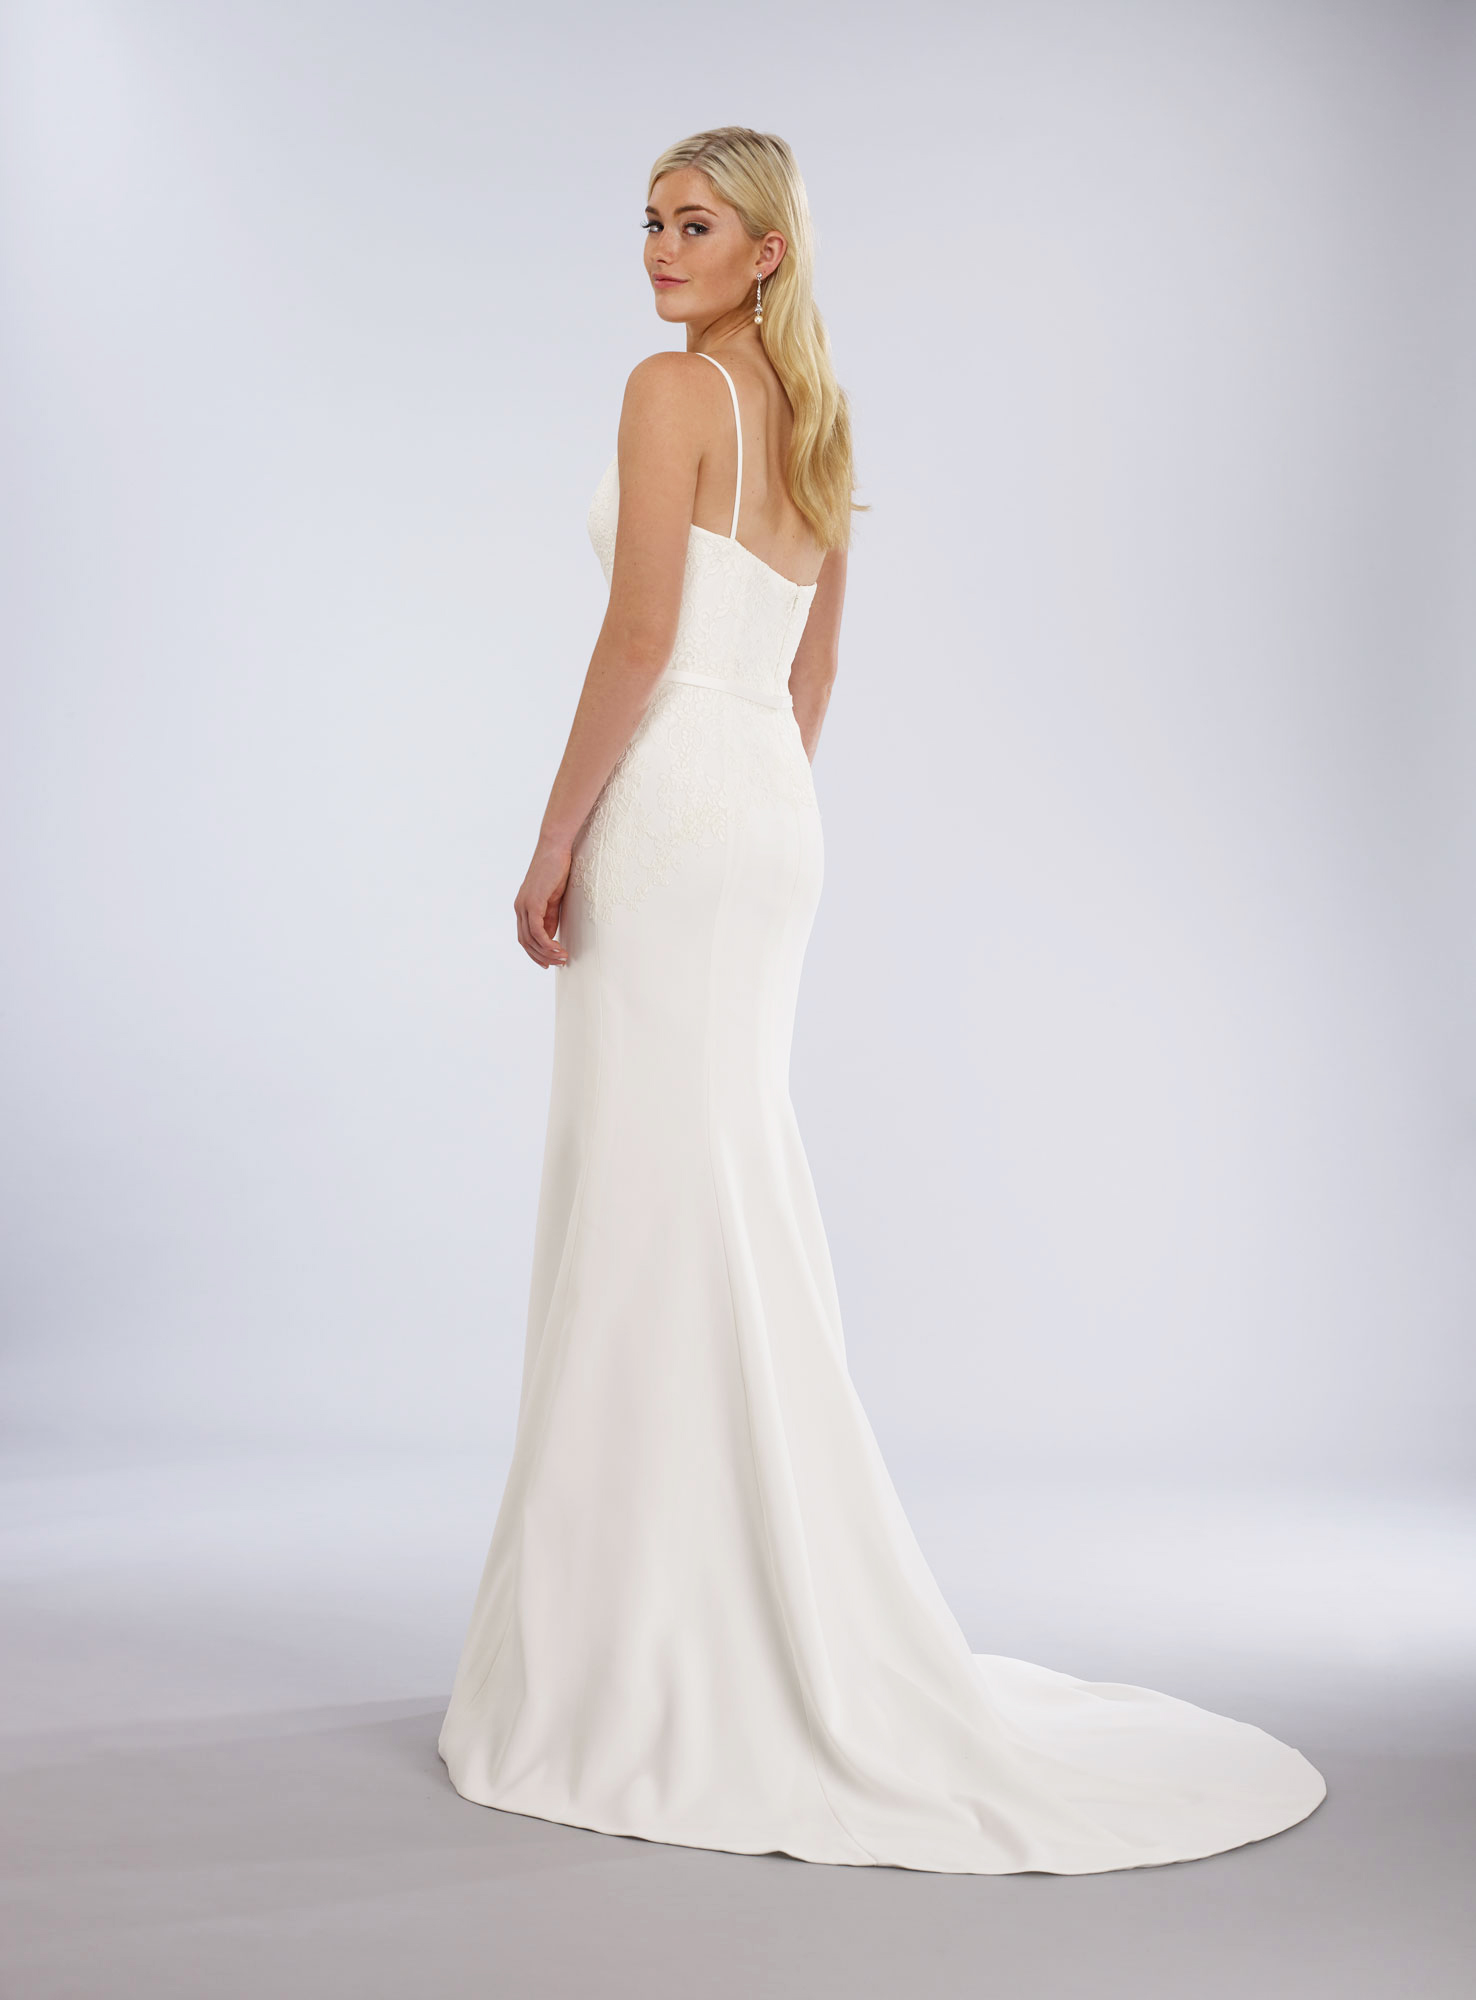 low v-cut neck wedding gown